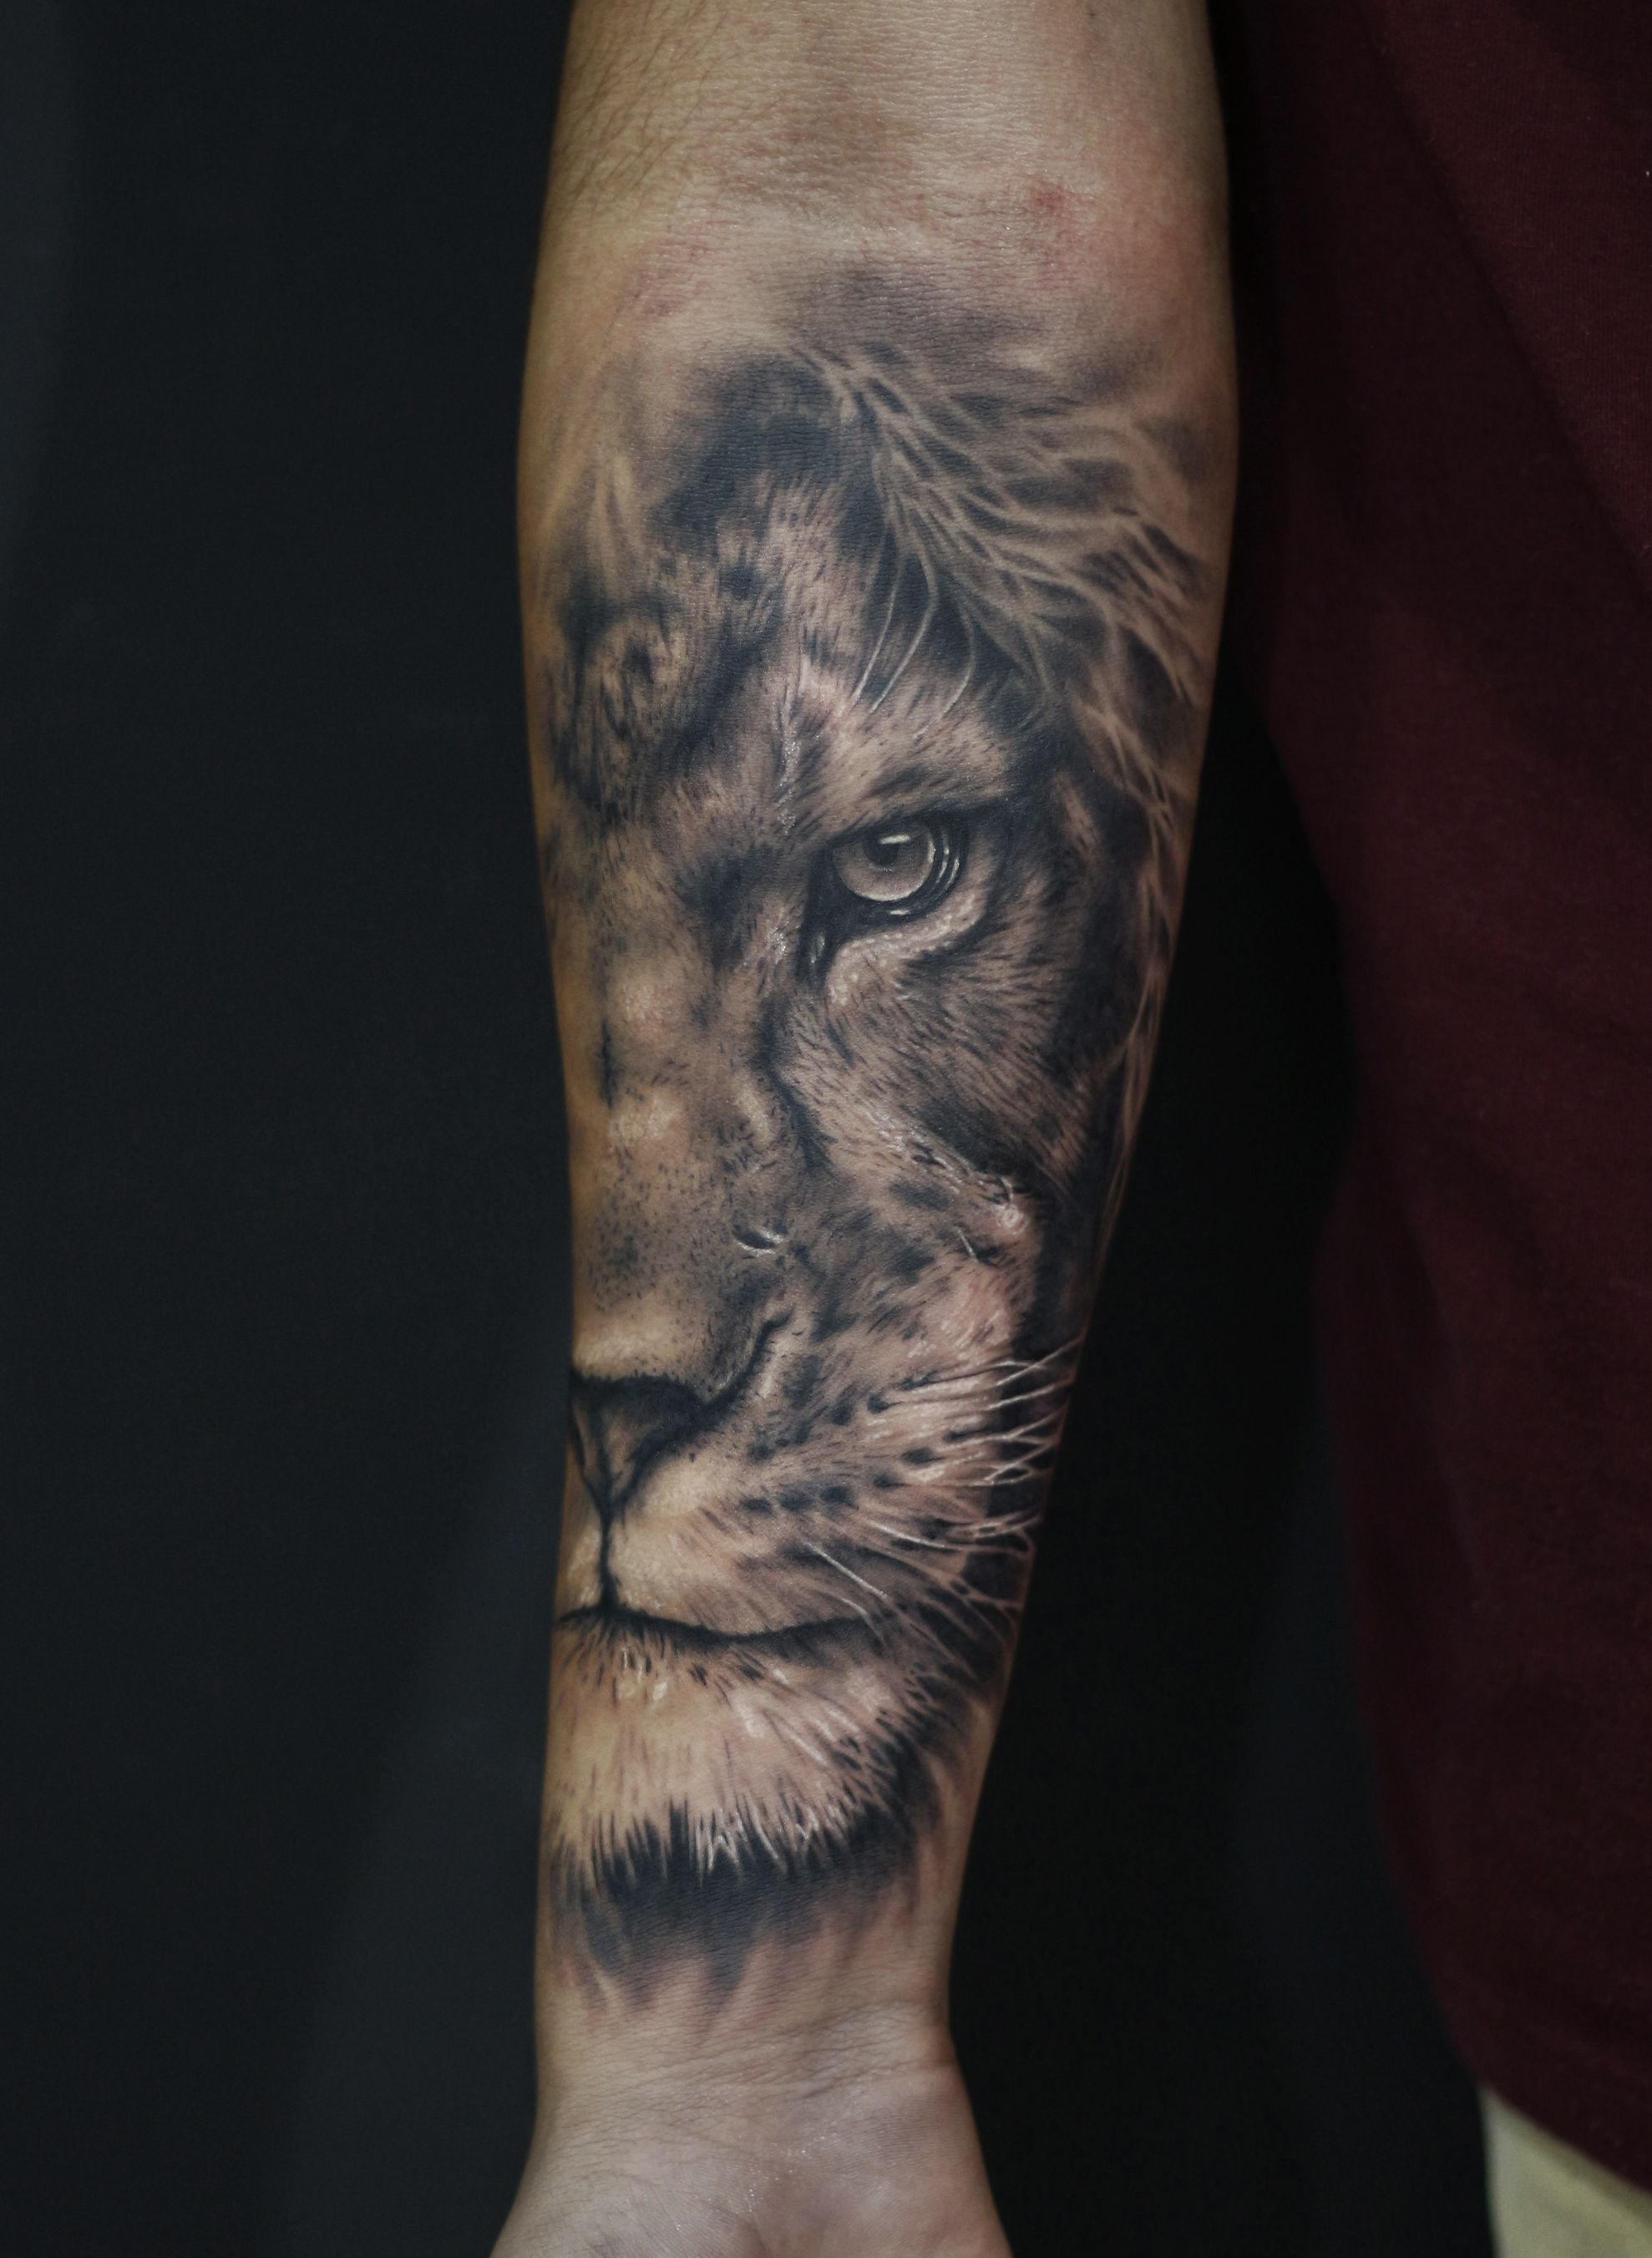 How To Choose A Tattoo Artist In 2020 Leeuwentatoeage Leeuw Tatoeages Leeuwenkop Tatoeages